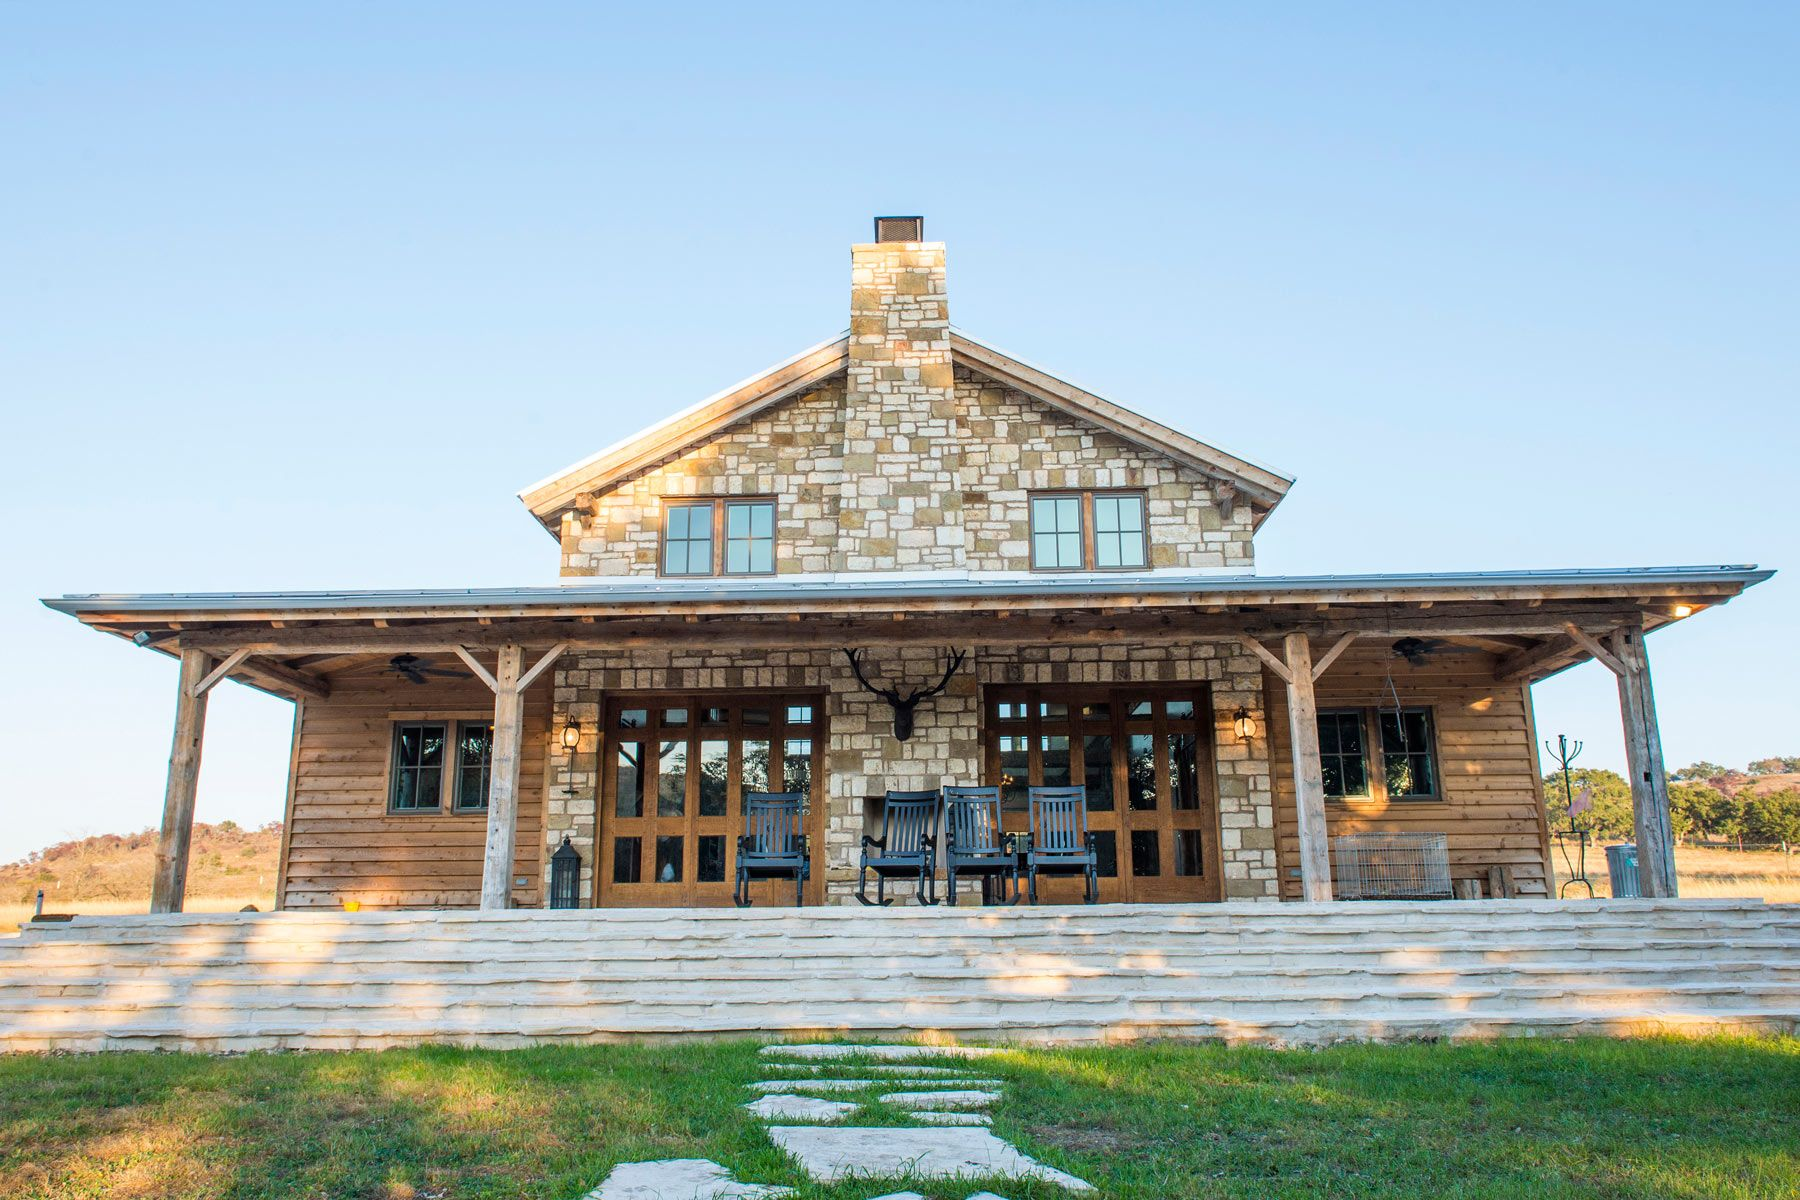 The River Hill Ranch Barn Home Is An Example Of The Architecture,  Woodcrafts, Blacksmithing, Fixture And Furniture Design Of The Community Of  Craftsmen At ...